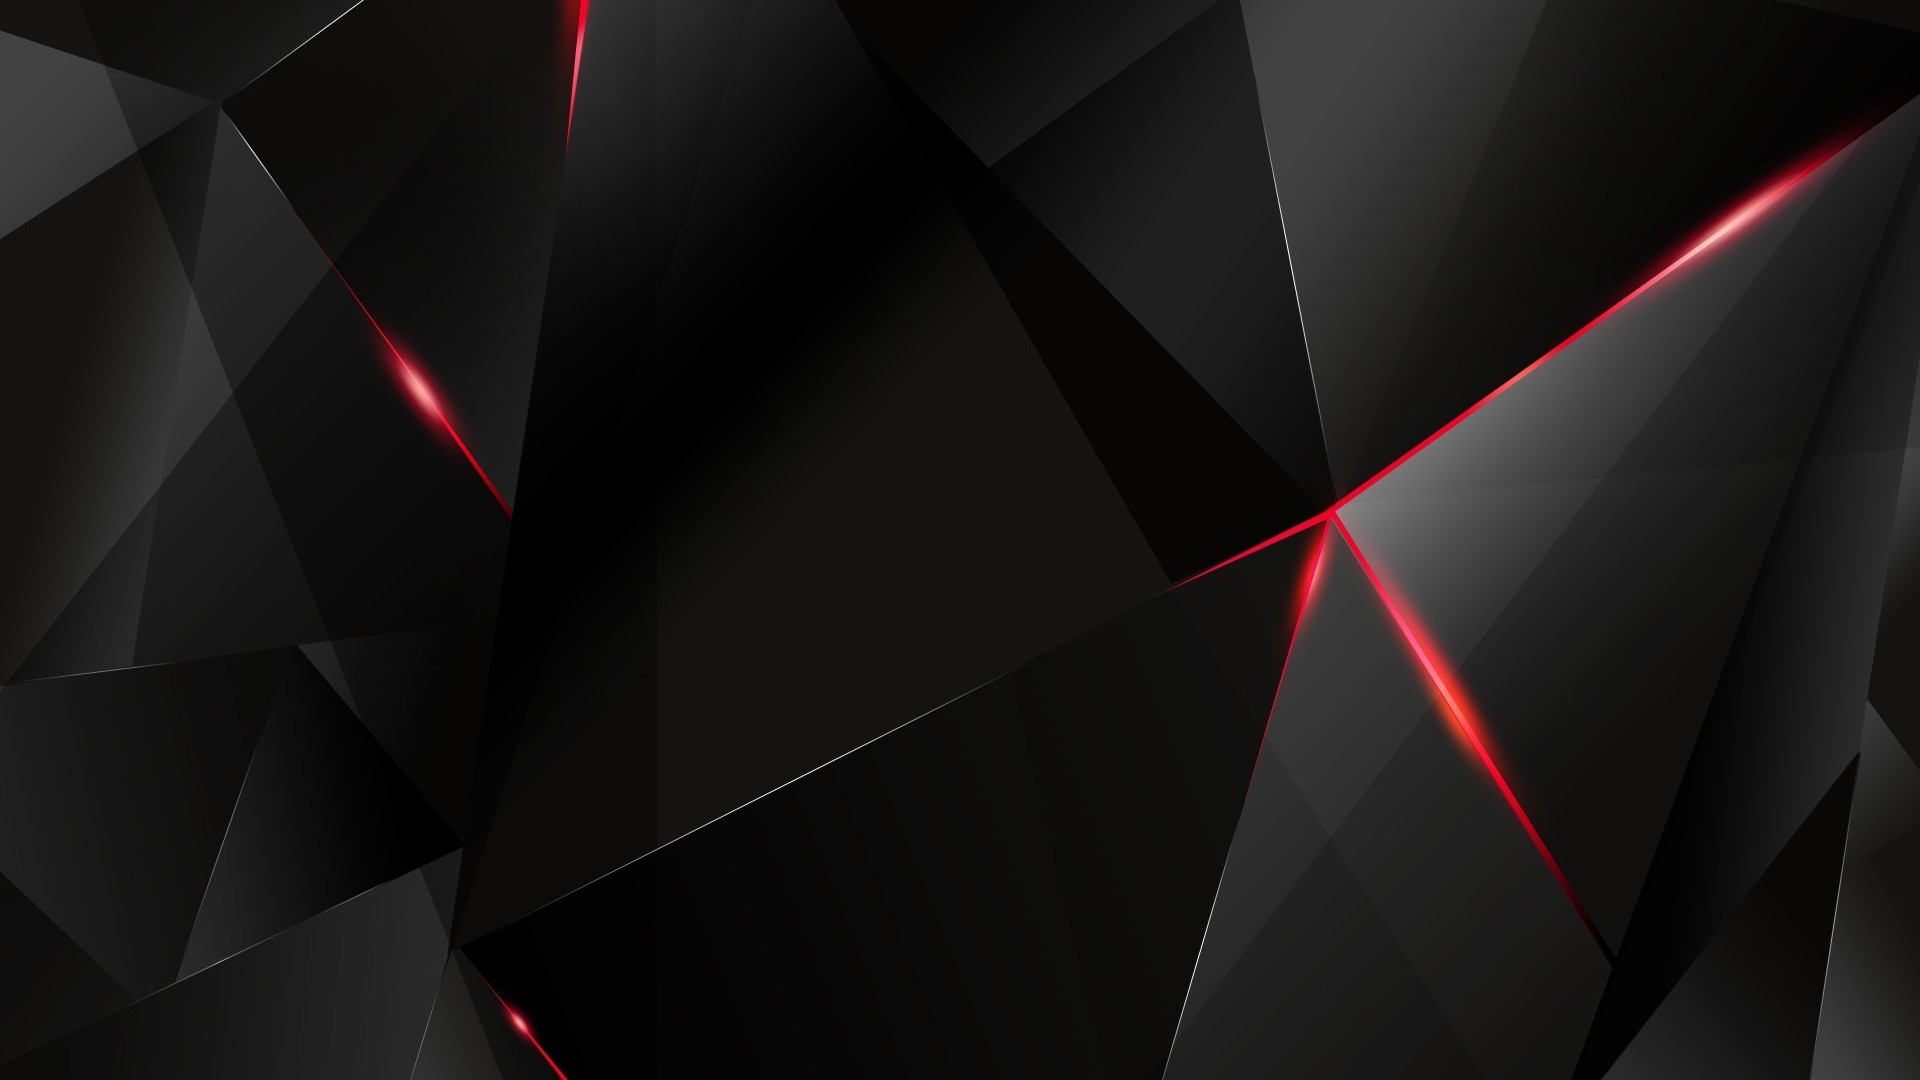 Black polygon with red edges abstract hd wallpaper 1920x1080 120 1920x1080